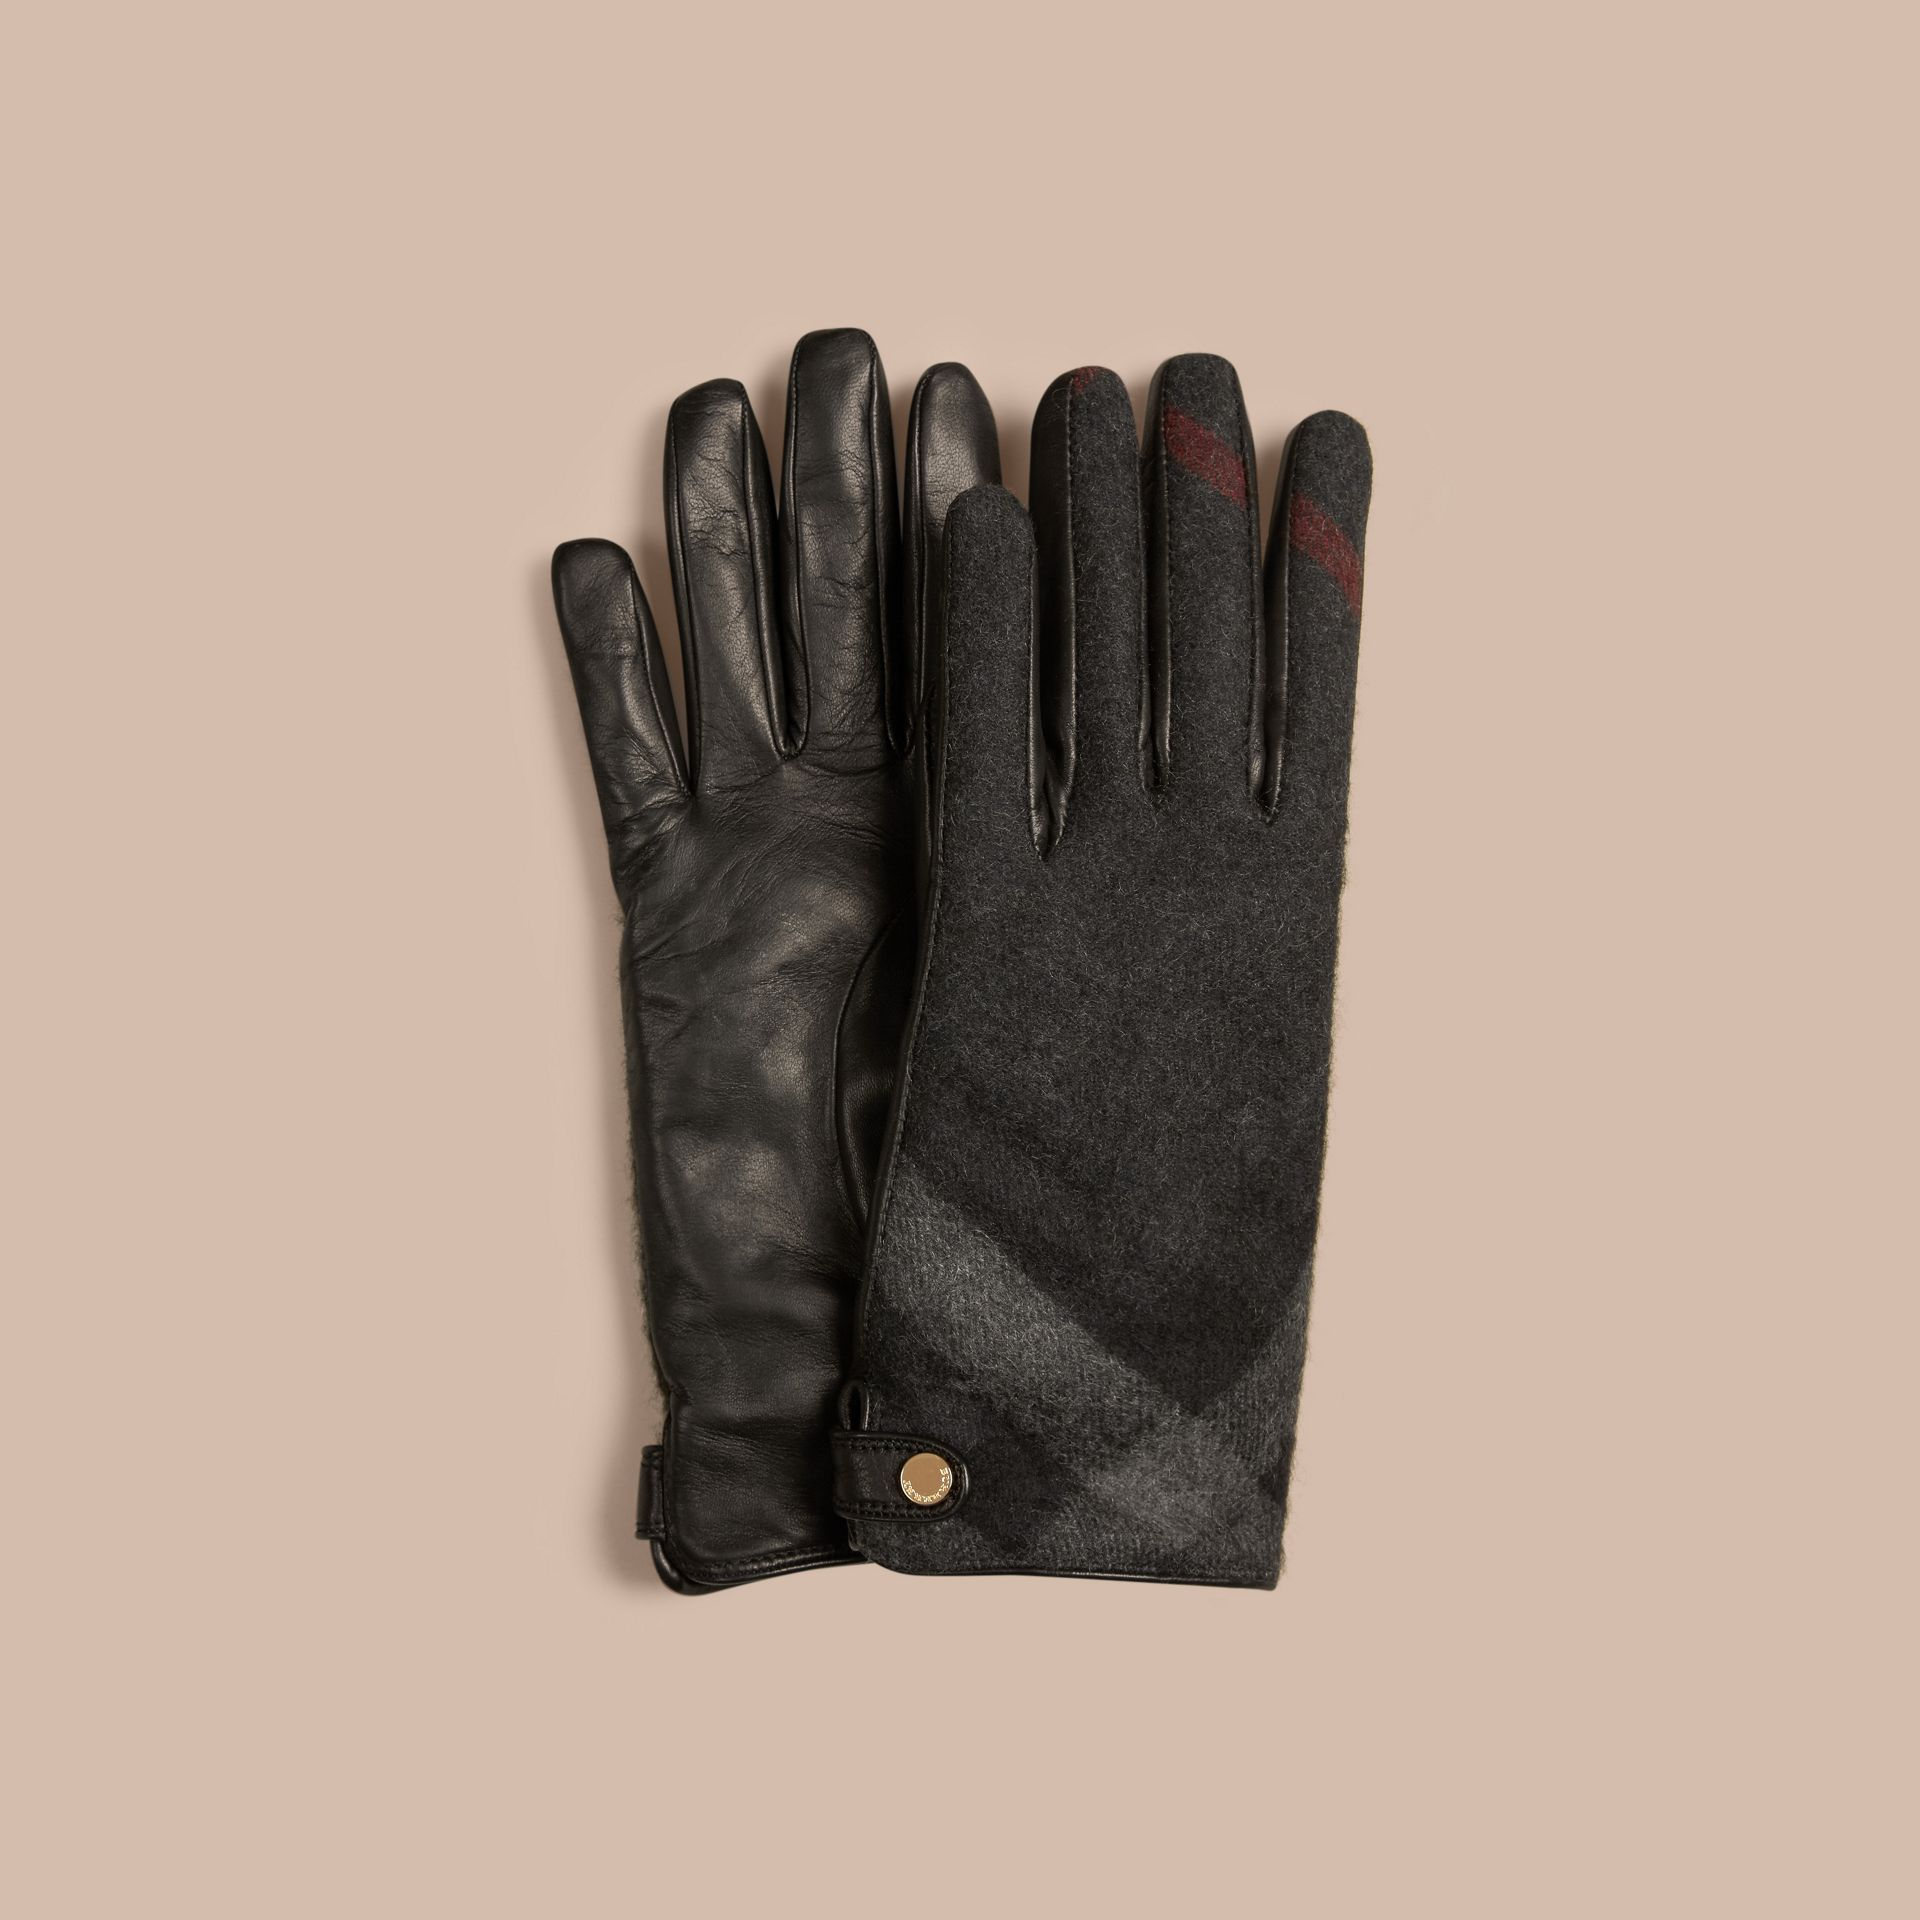 Gants en cuir et cachemire à motif check (Anthracite) - photo de la galerie 1